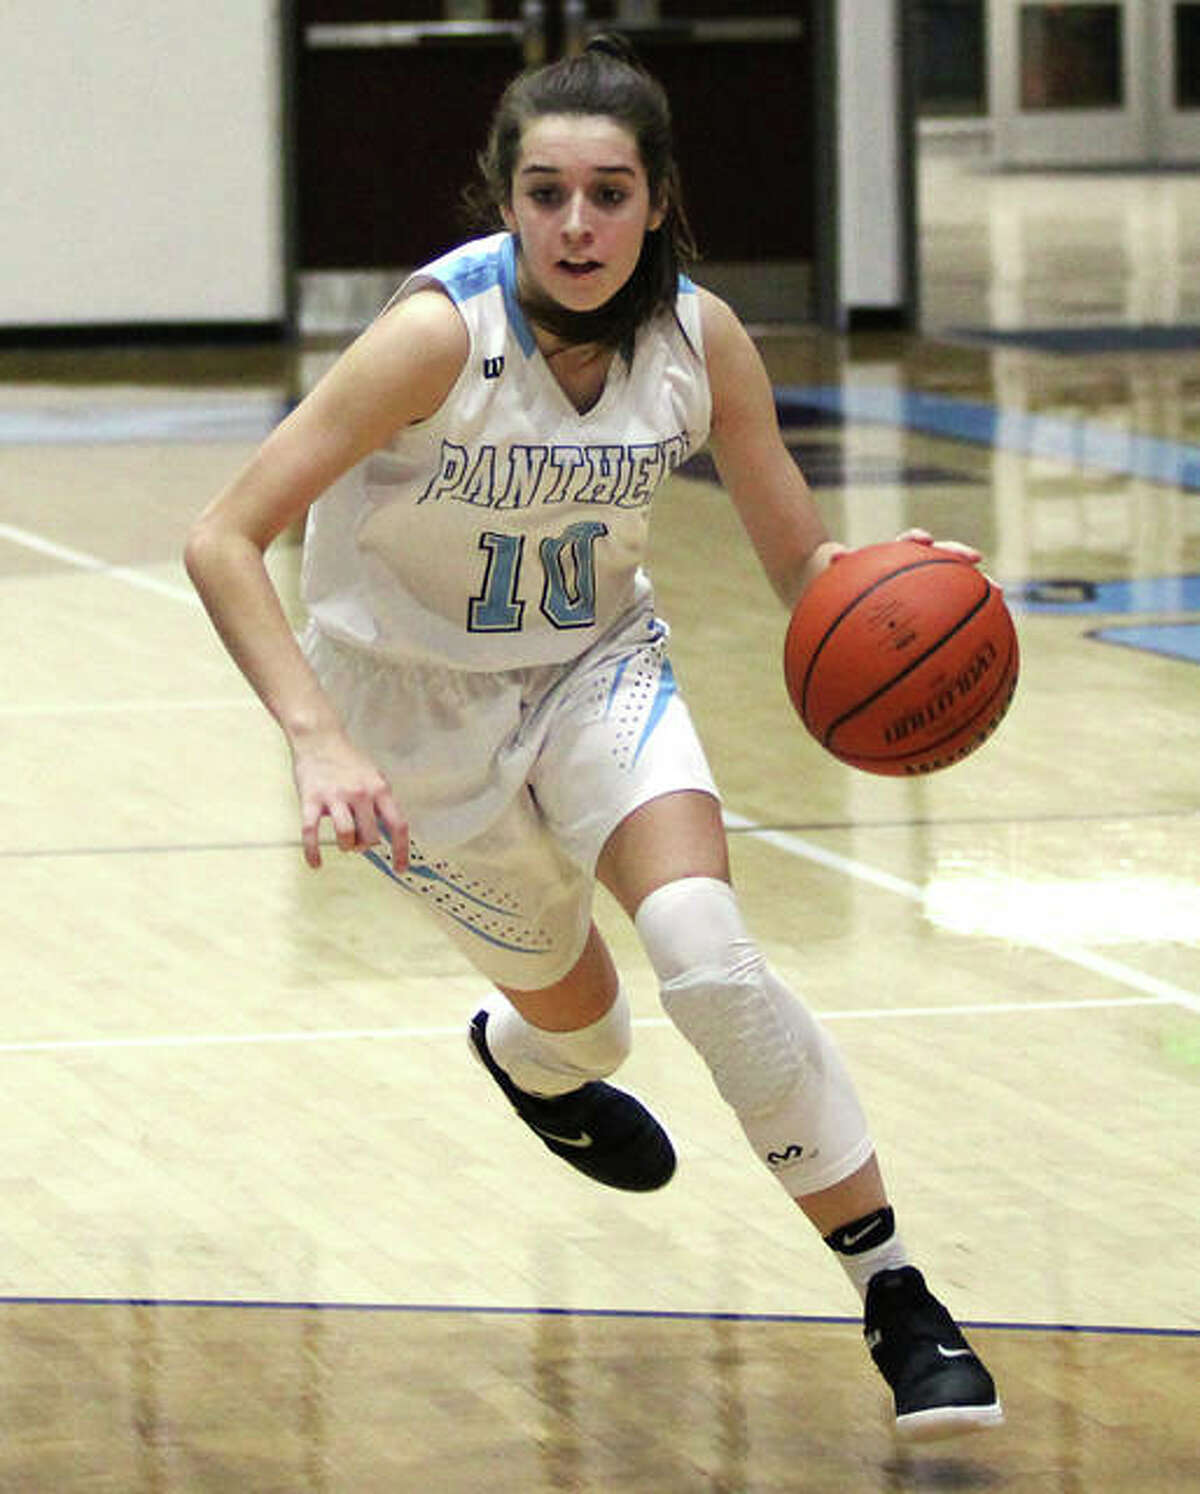 Jersey's Abby Manns, shown in a game last season, scored 15 points to lead the Panthers to a win over Breese Central on Saturday night in the championship game of the Alton Tournament.